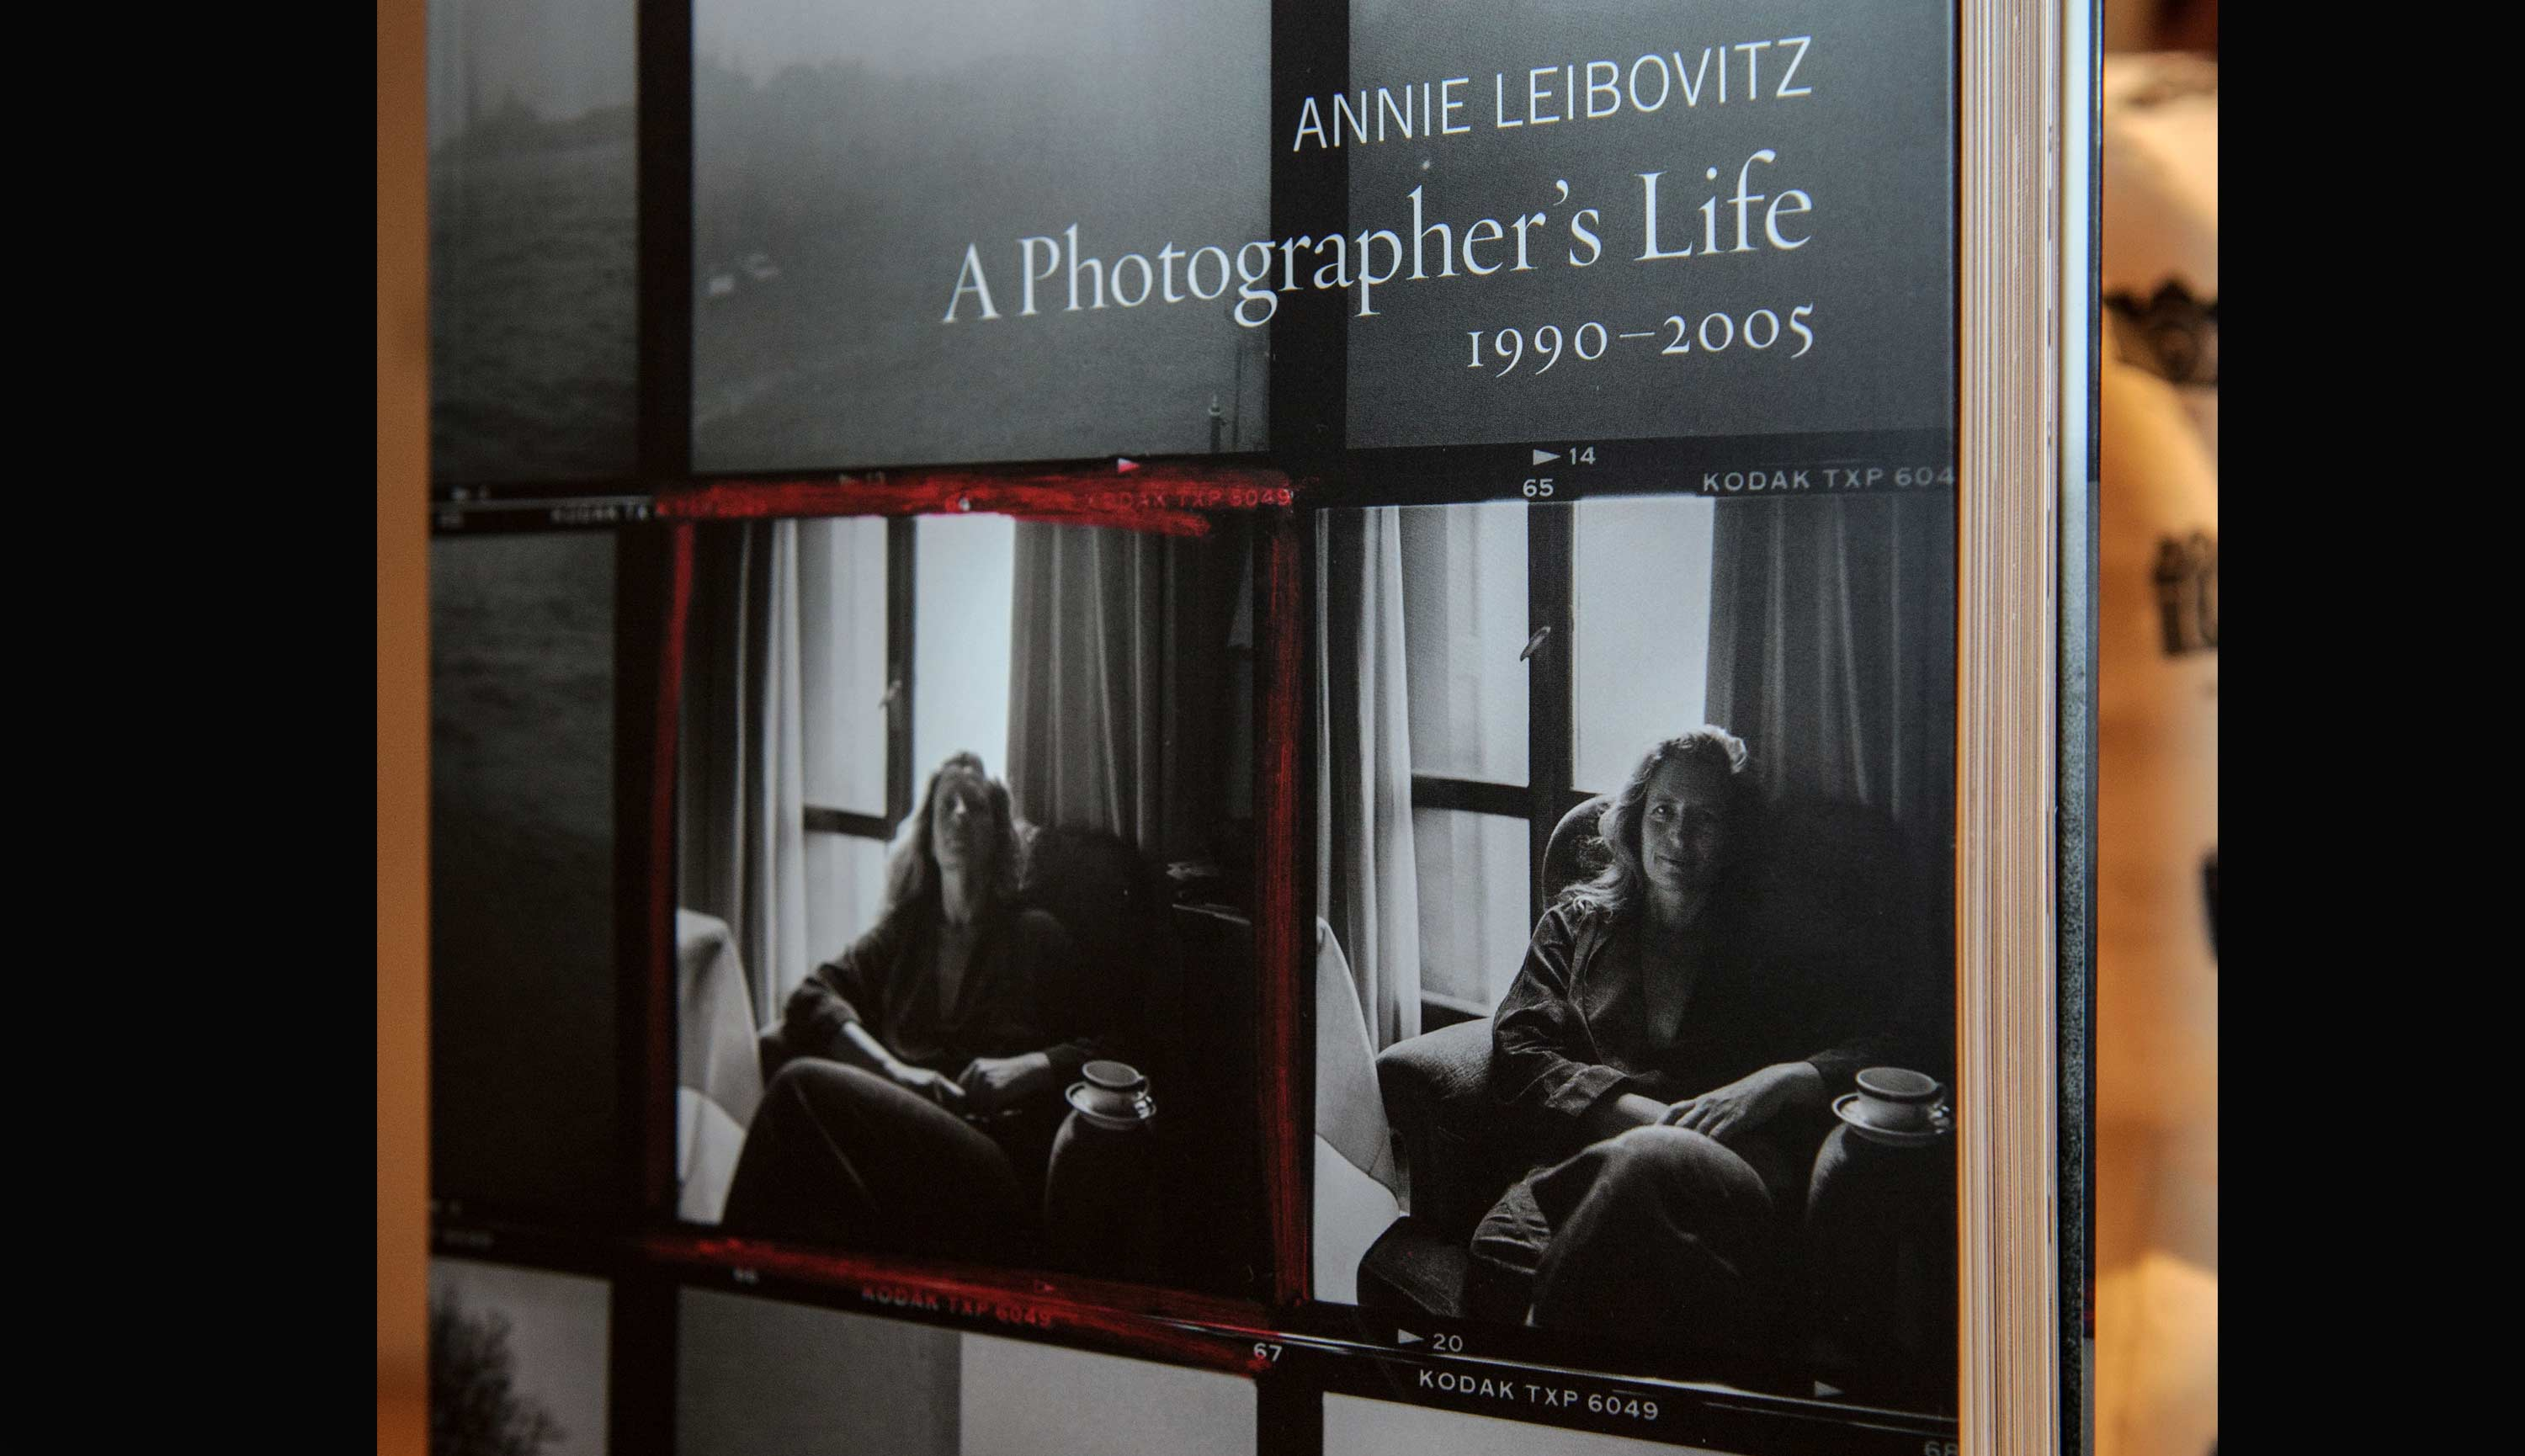 Annie Leibovitz A photographer's life 1990-2005 book